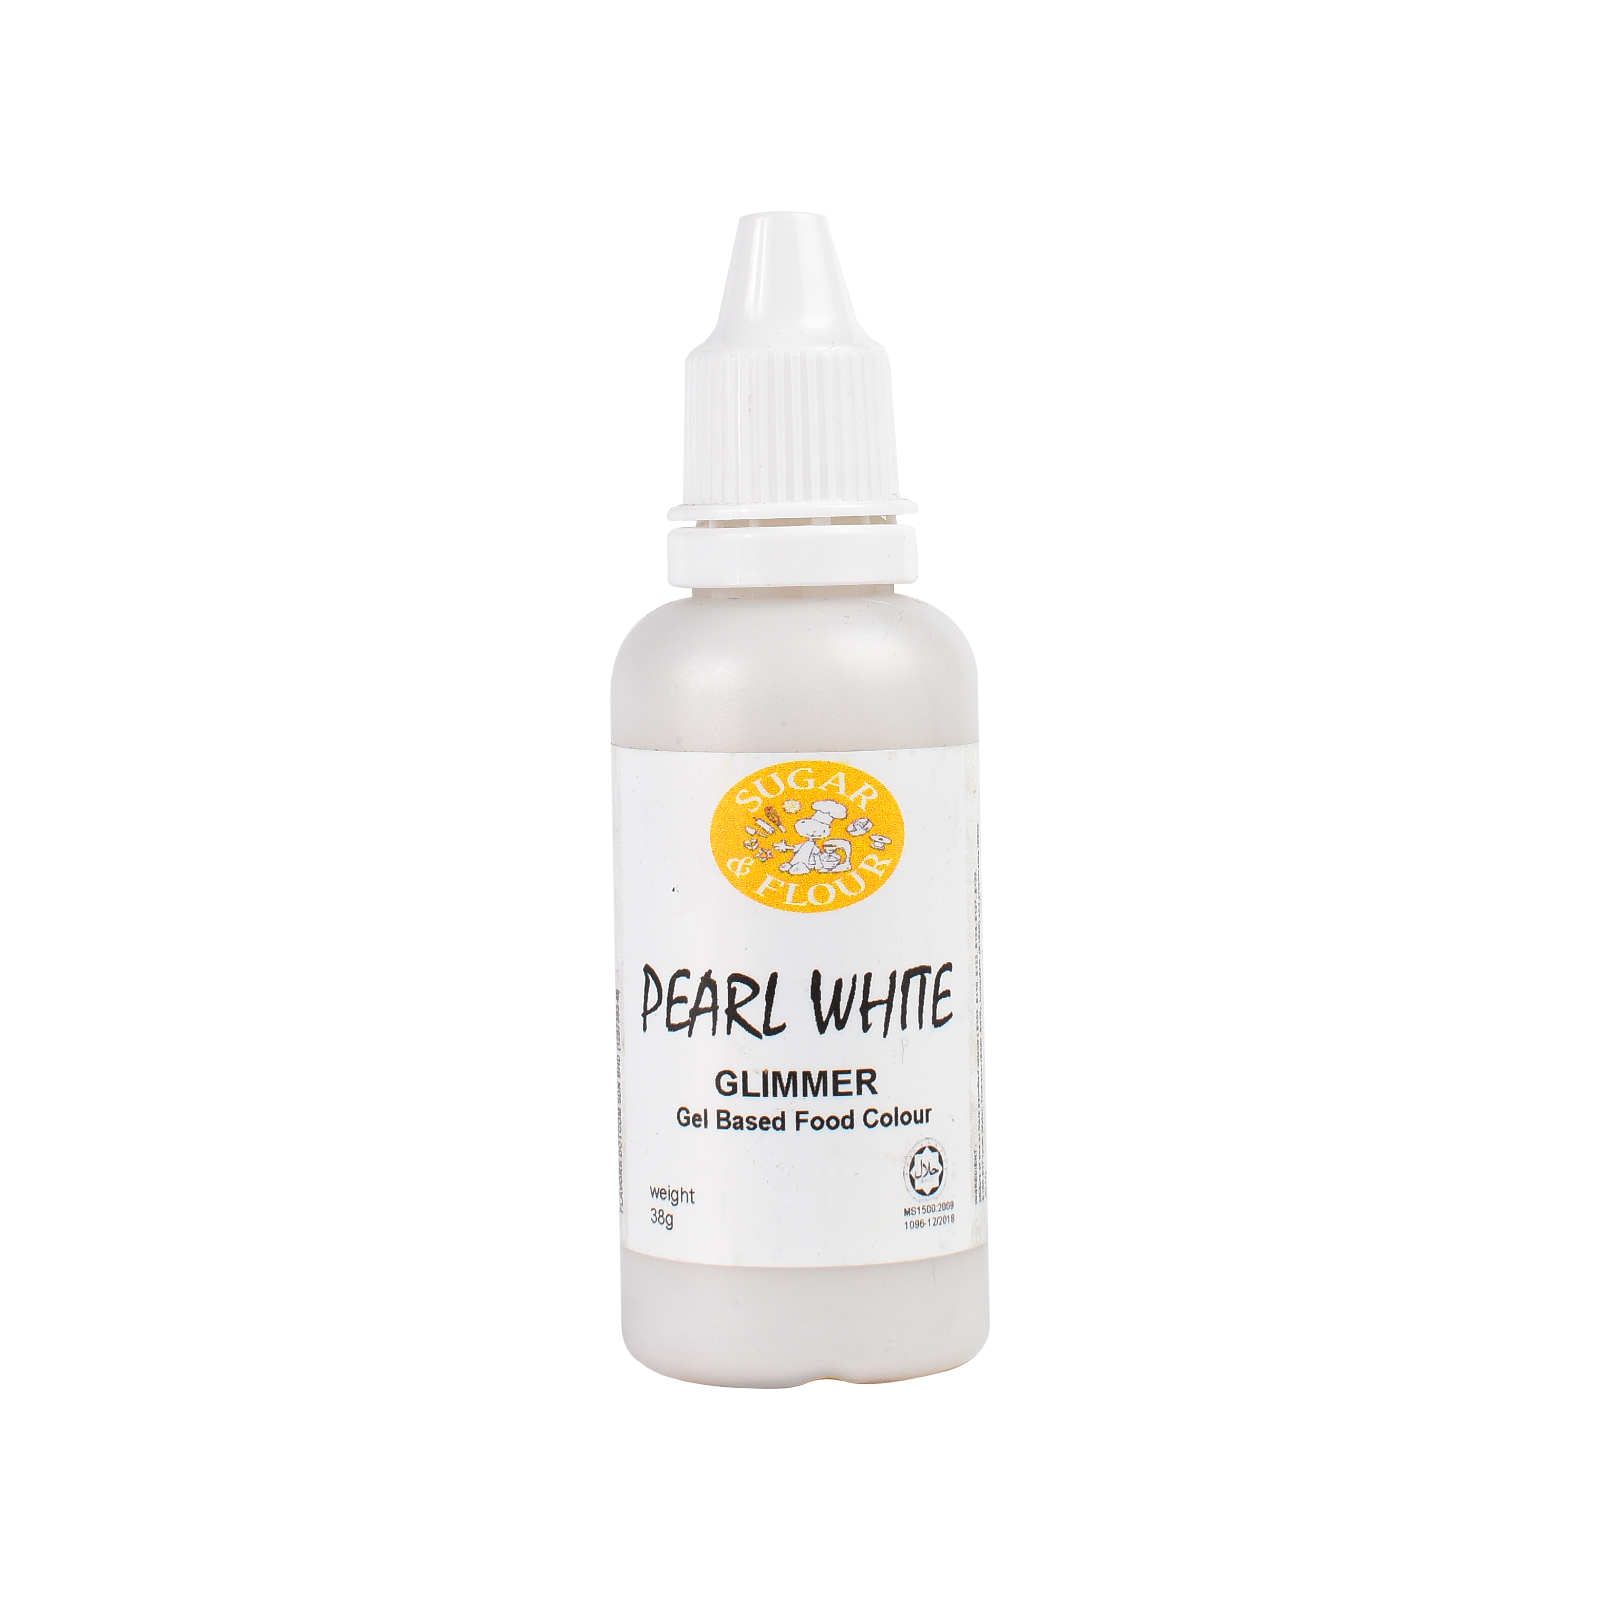 pearl white glimmer gel based food colour.png